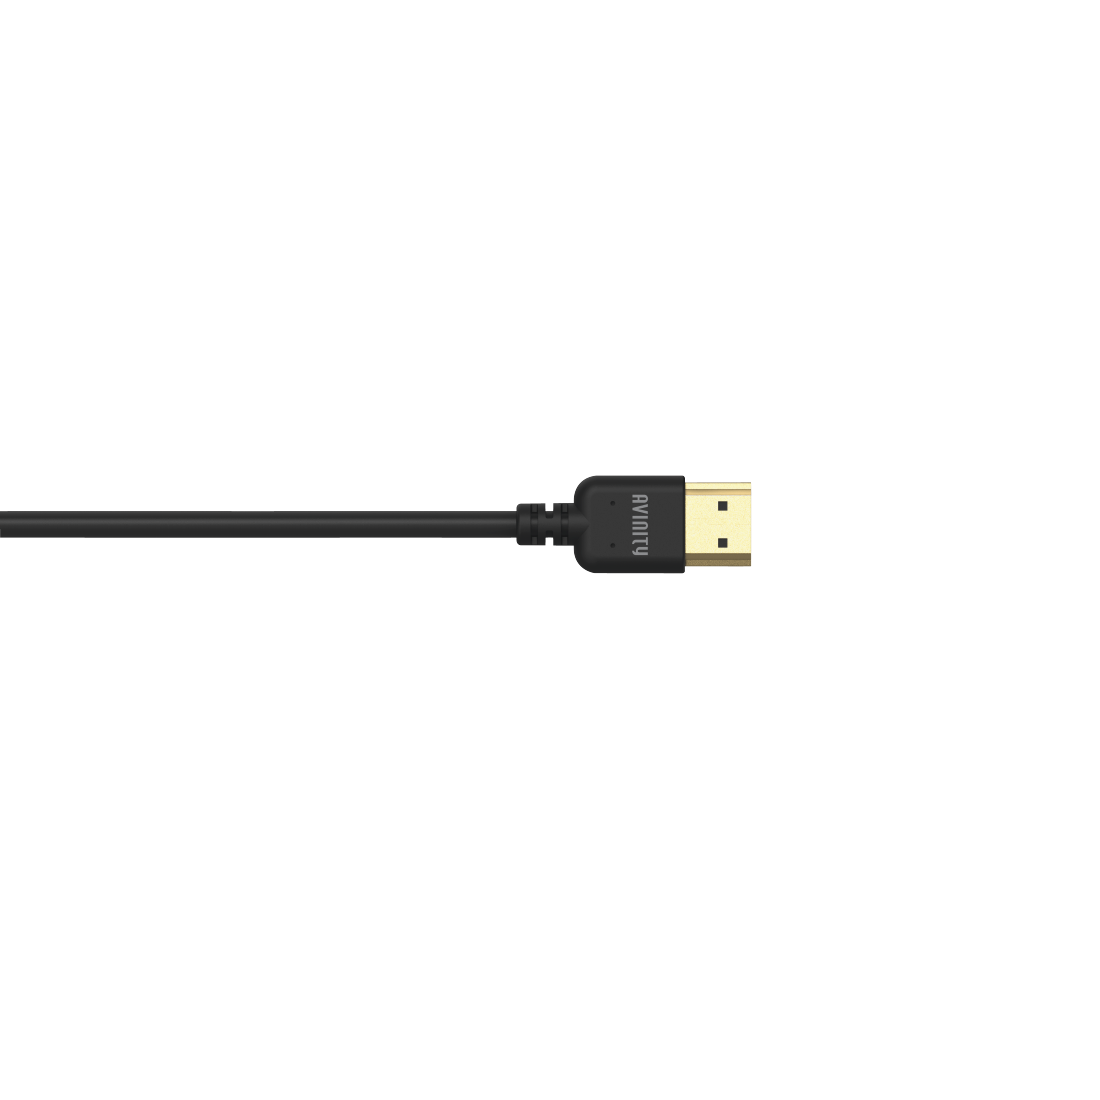 abx2 High-Res Image 2 - Avinity, High Speed HDMI™ Cable, Plug-Plug, ultra-flexible, gold-plated, Ethernet, 2.0 m